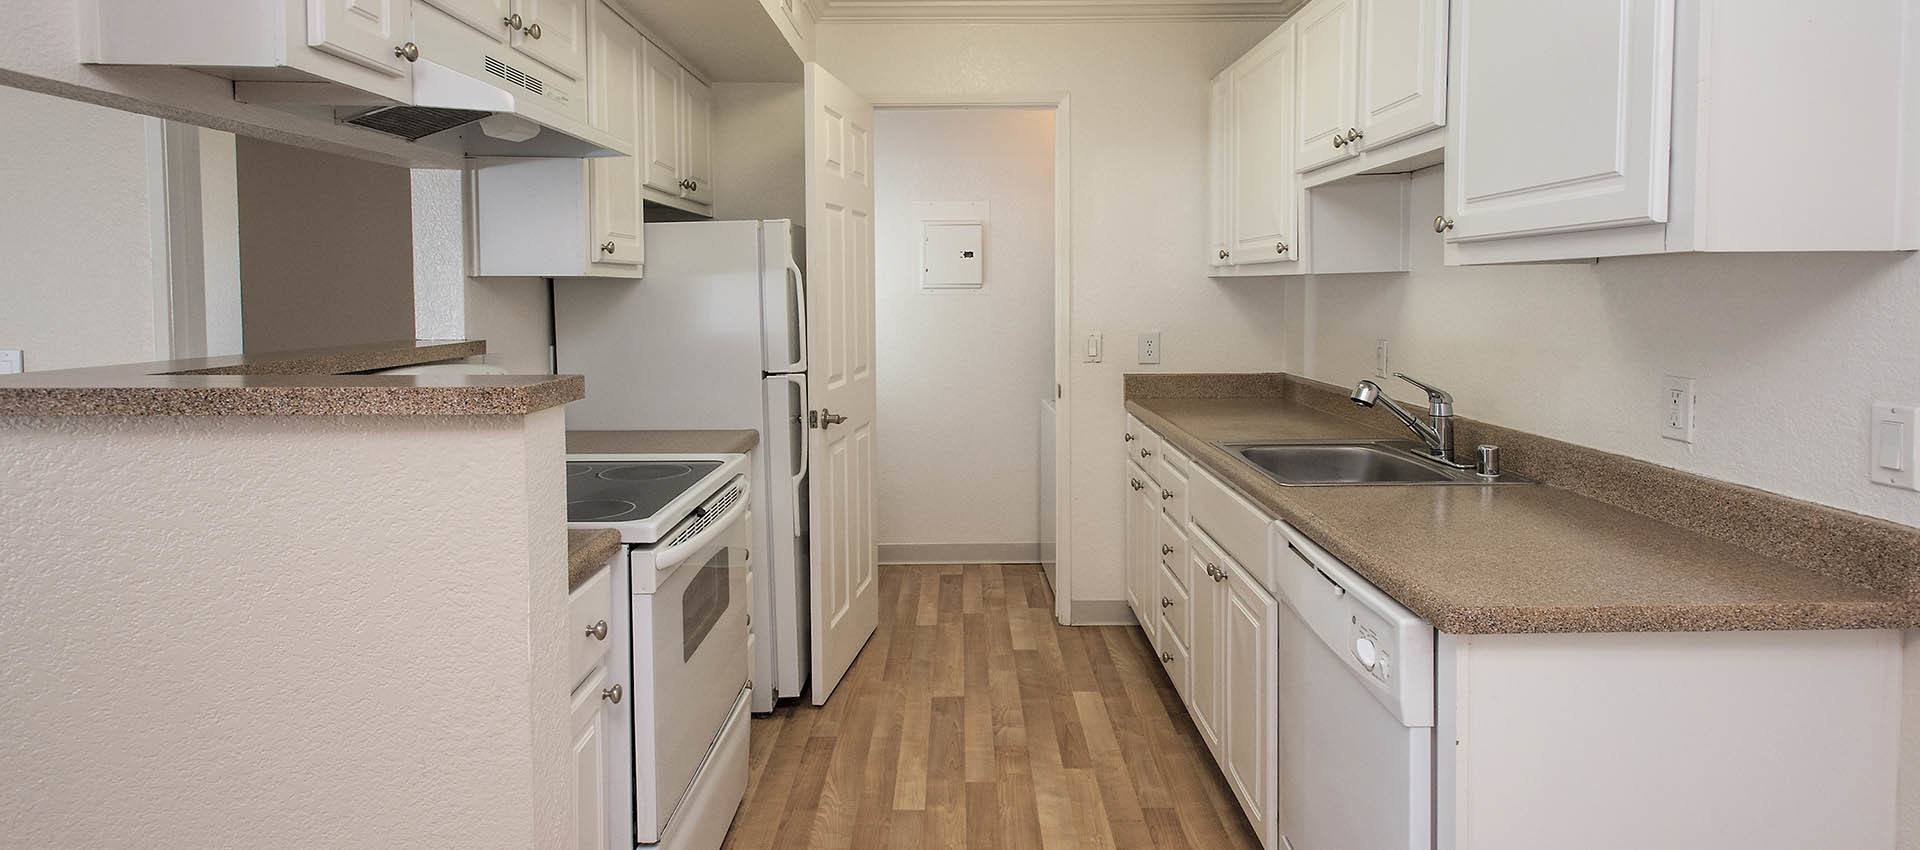 White Cabinets And Appliances at Plum Tree Apartment Homes in Martinez, CA